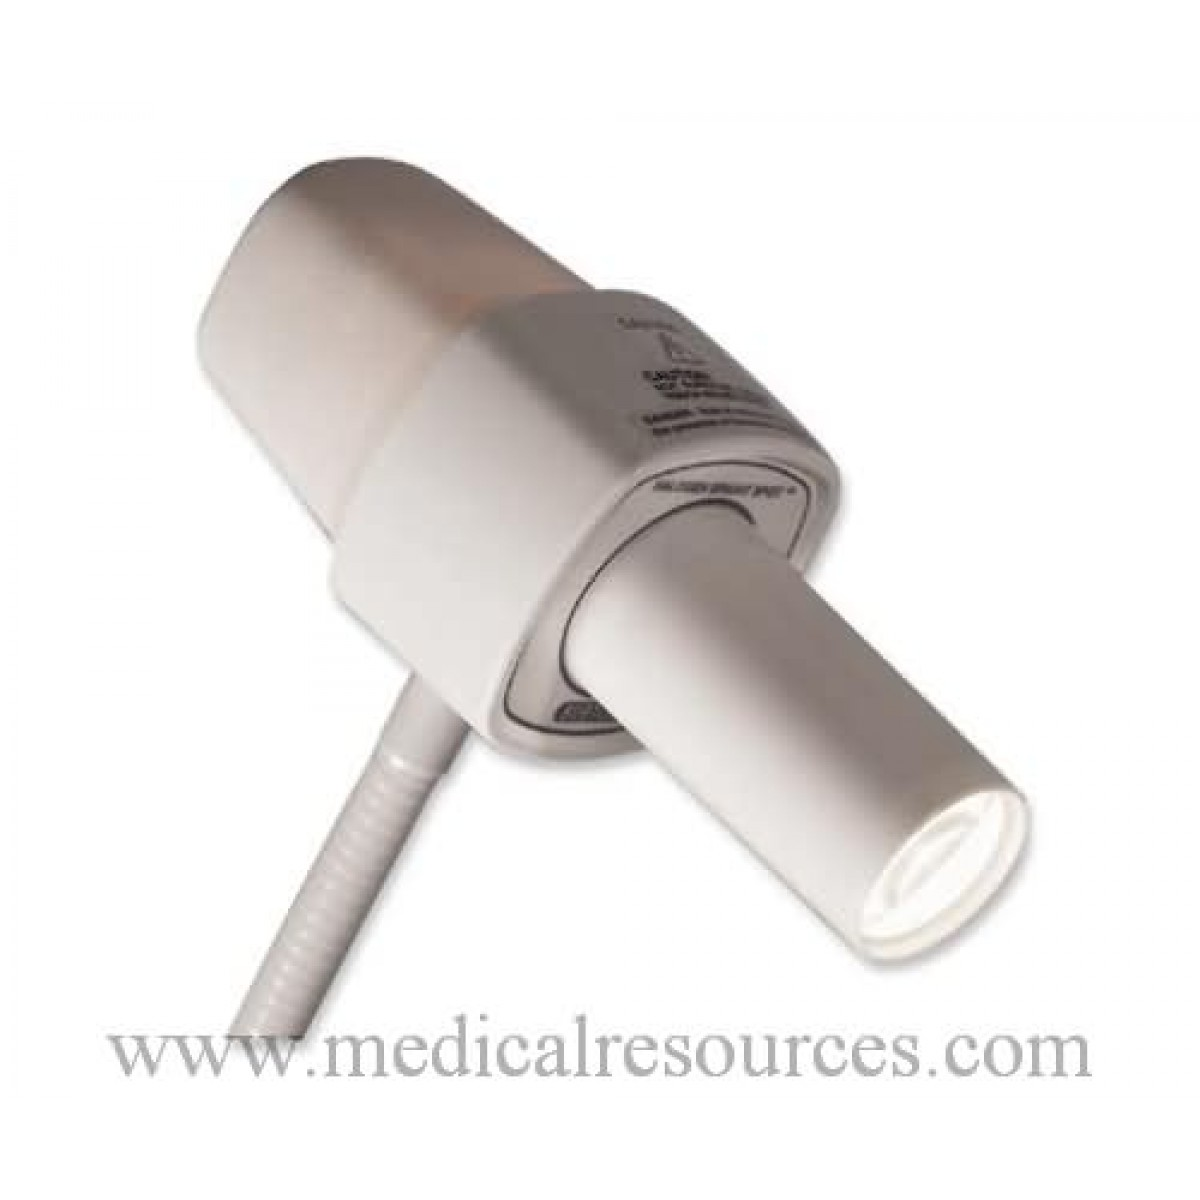 Bright Light Philips Philips Burton Super Bright Spot Exam Light